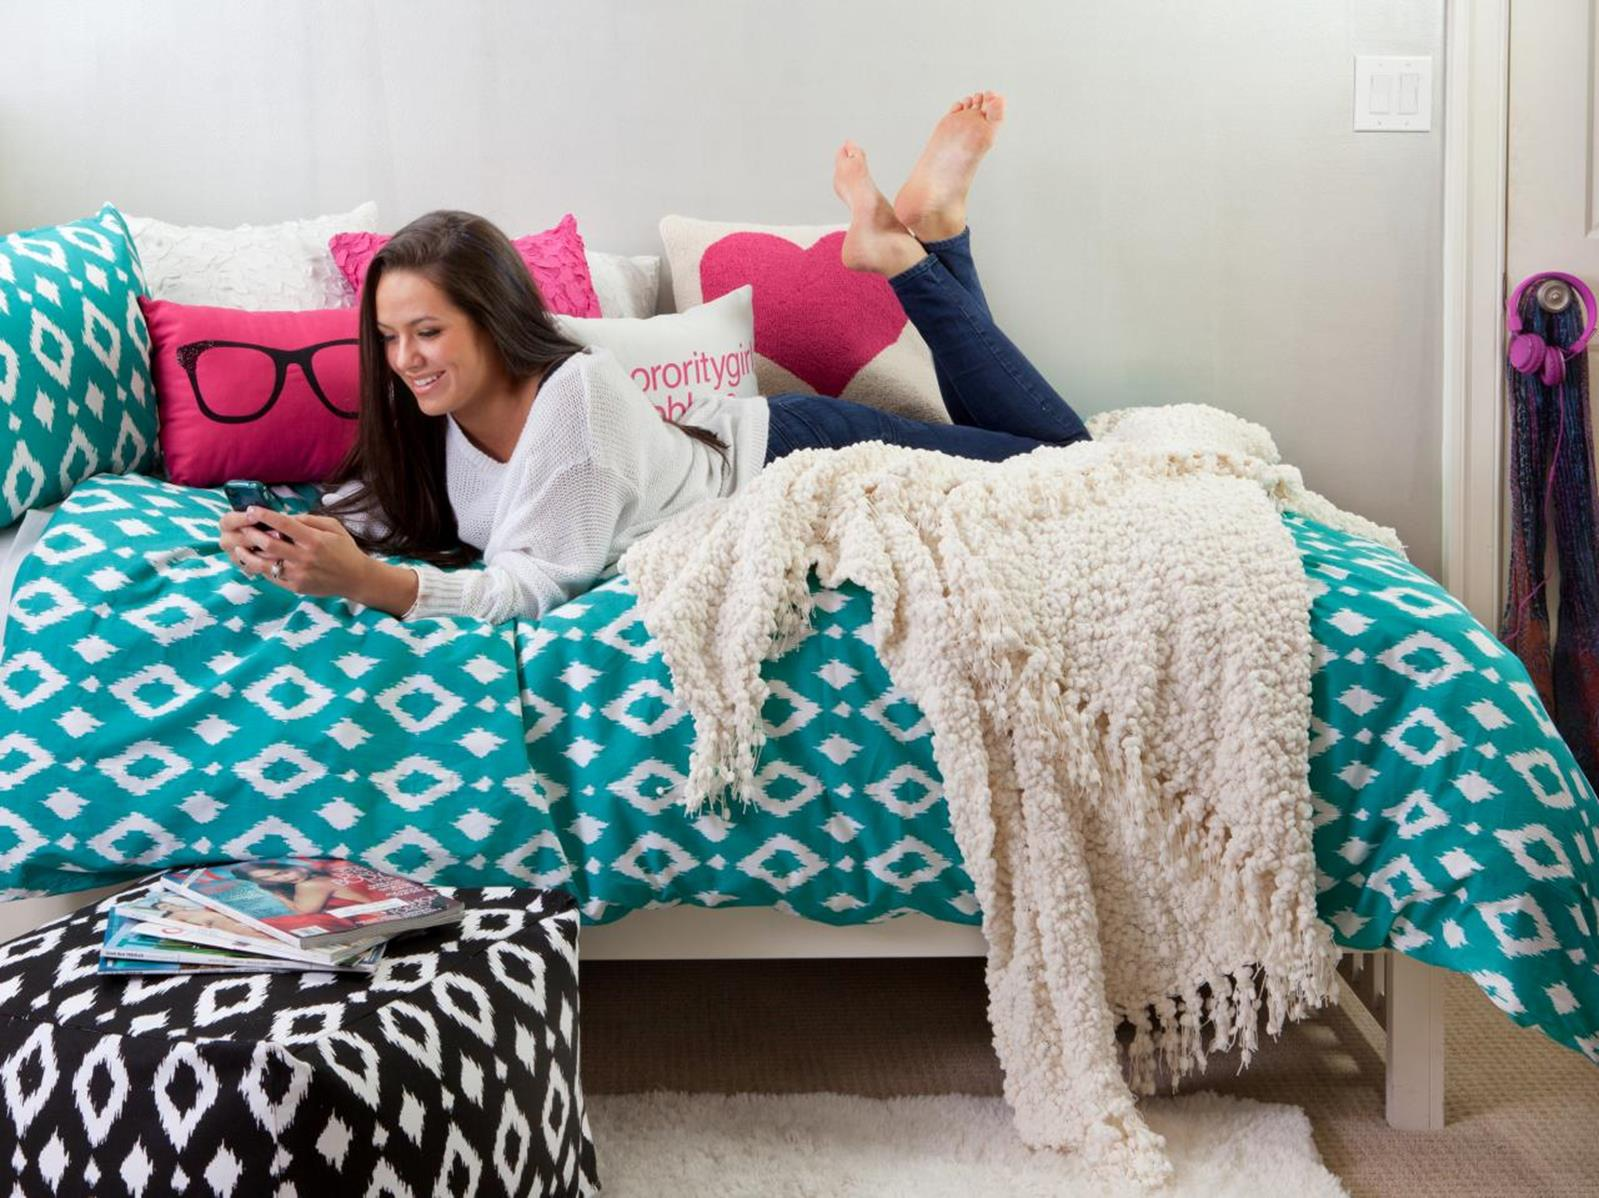 College Dorm Wall Decor For Girl 39